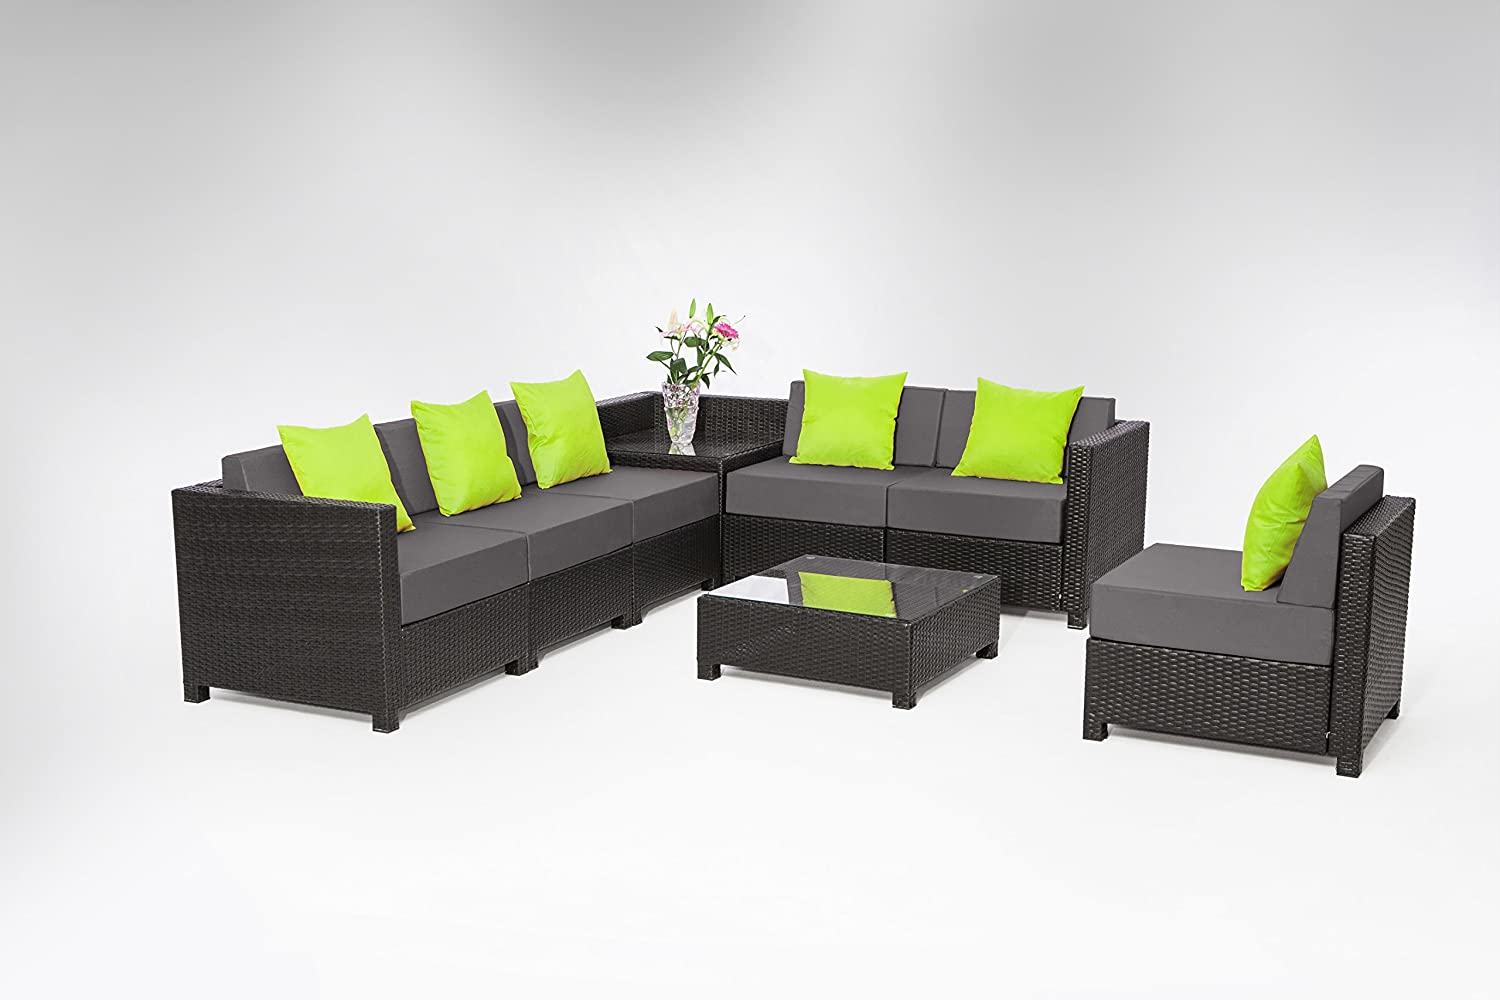 Exacme 8 pcs Luxury Wicker Patio Sectional Indoor Outdoor Sofa Furniture set Grey